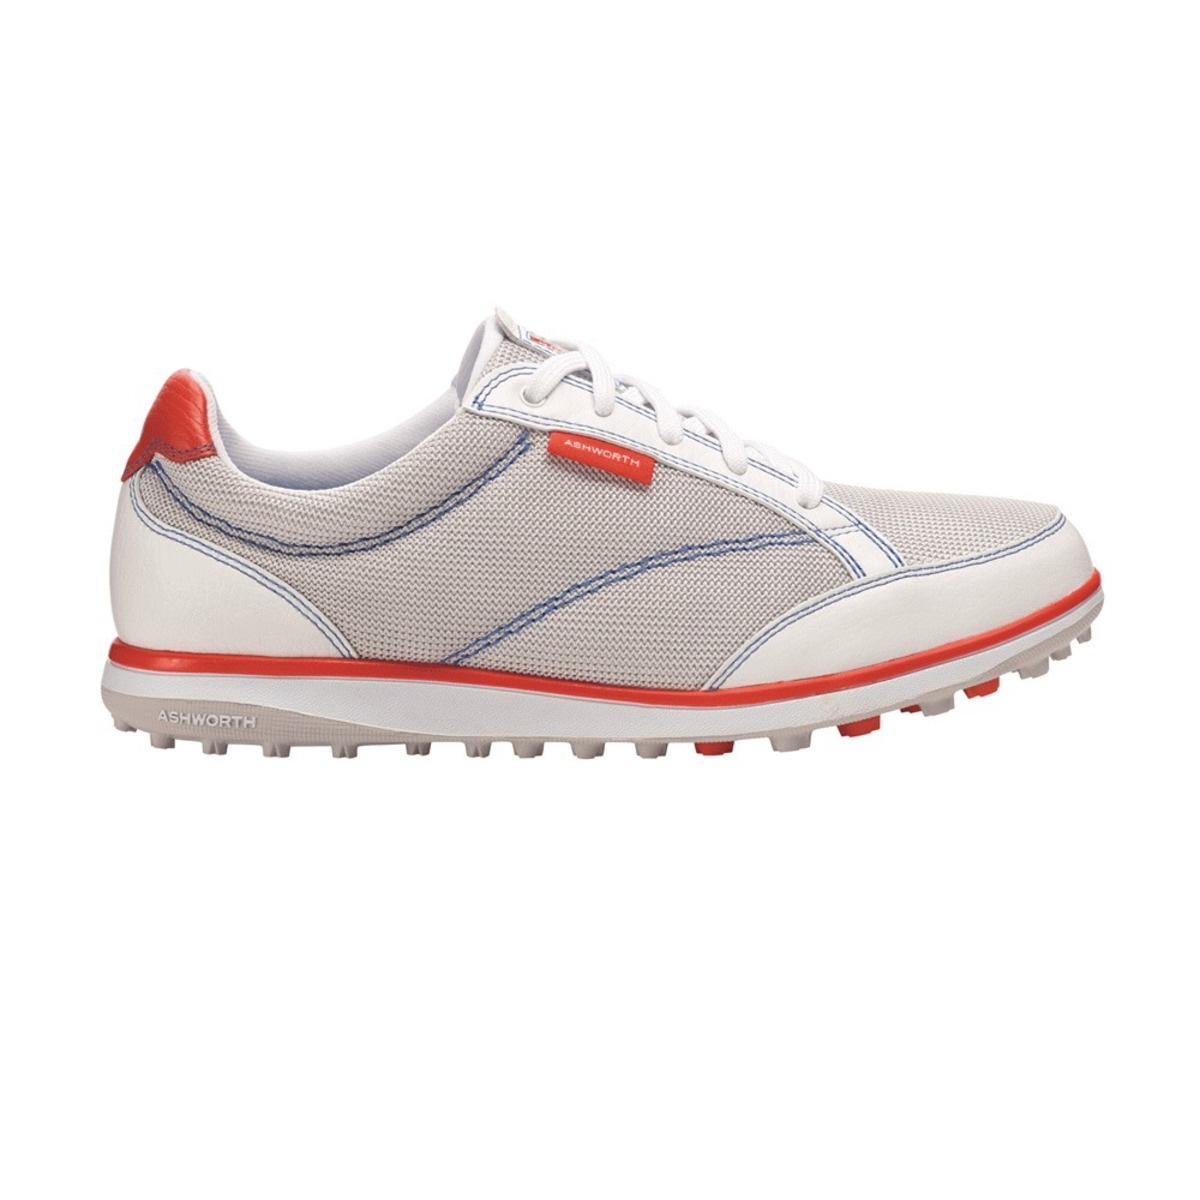 New Ashworth Cardiff ADC Spikeless Women's Golf Shoes ...